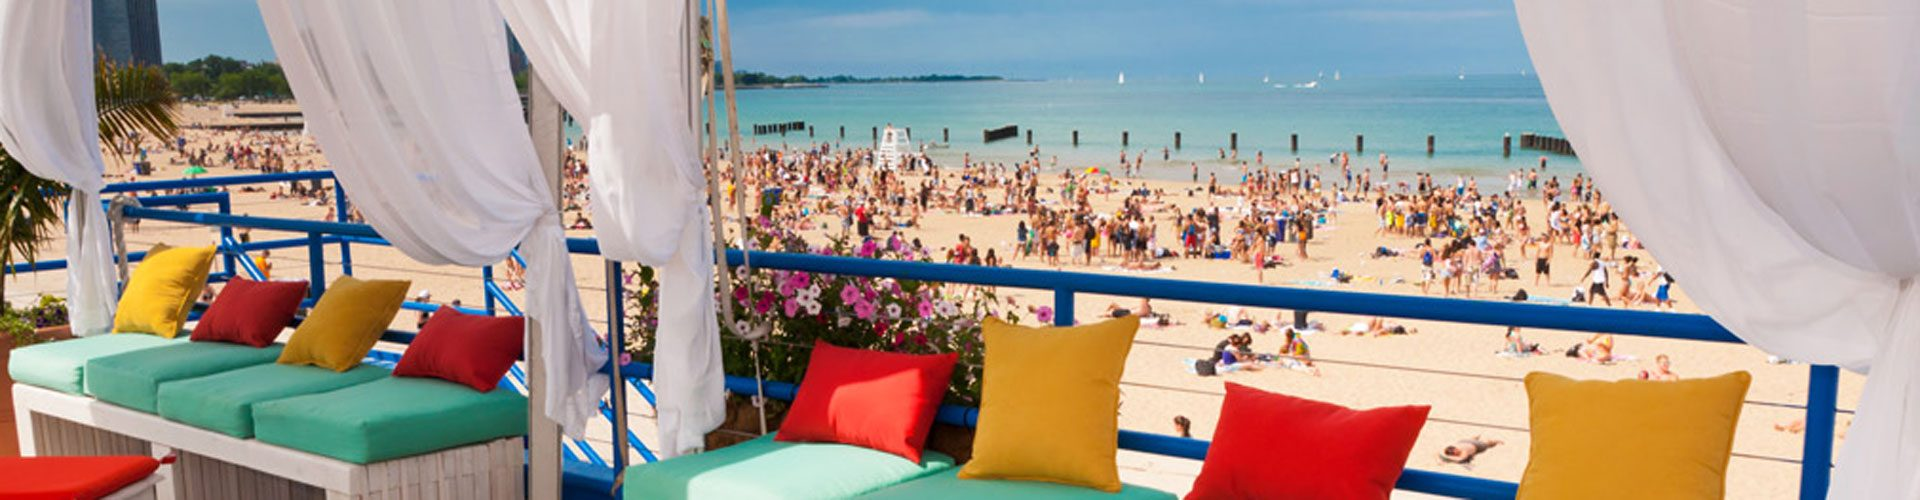 Restaurant Castaway, North Avenue Beach, direkt am Strand des Lake Michigan, Chicago